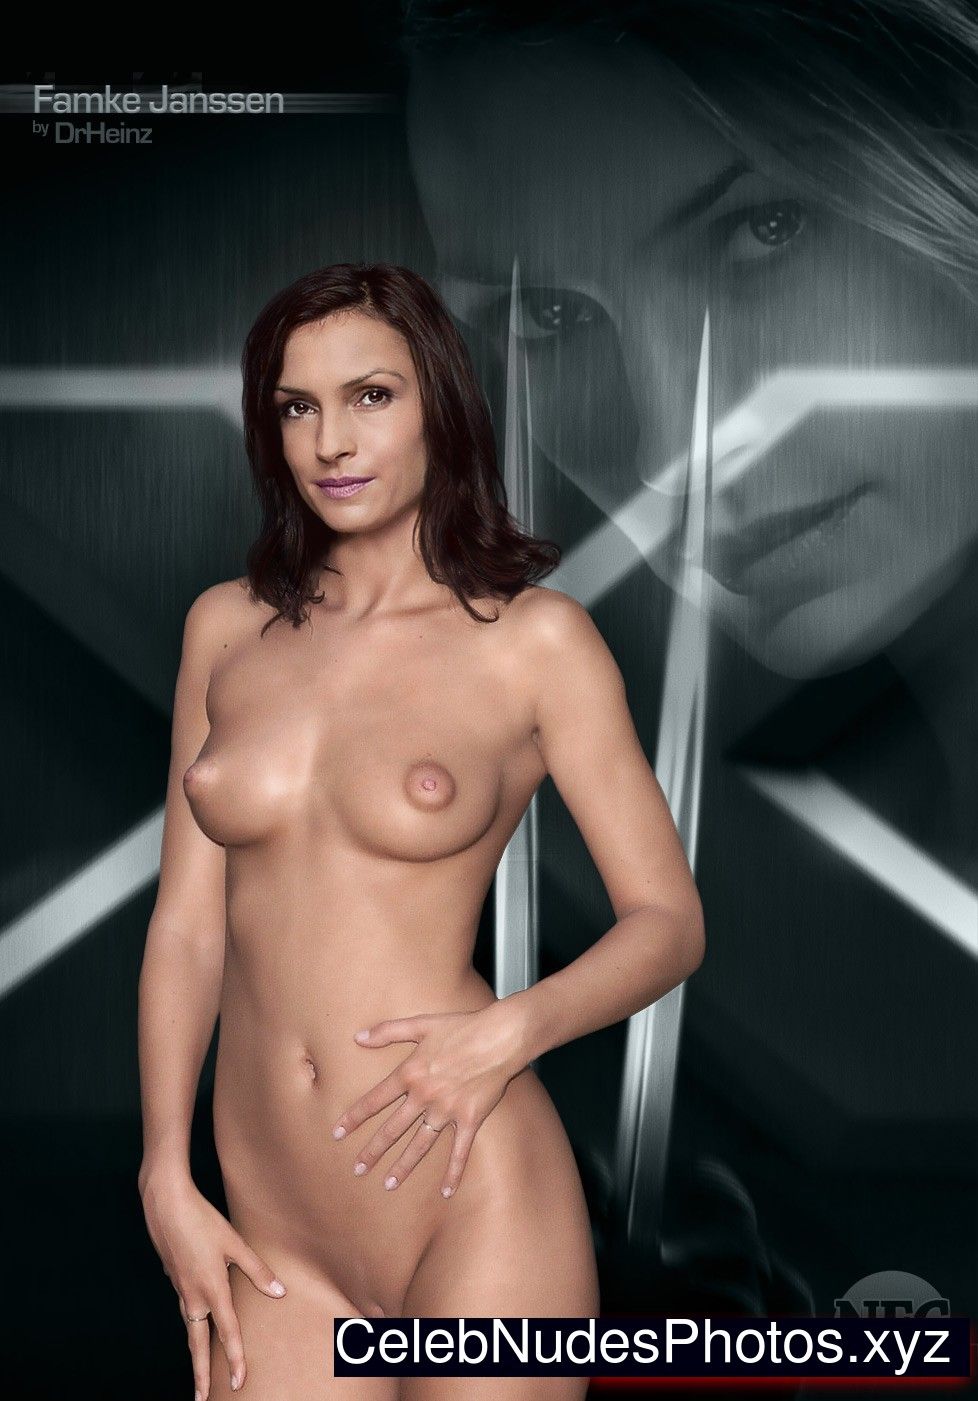 Famke Janssen nude celebrities